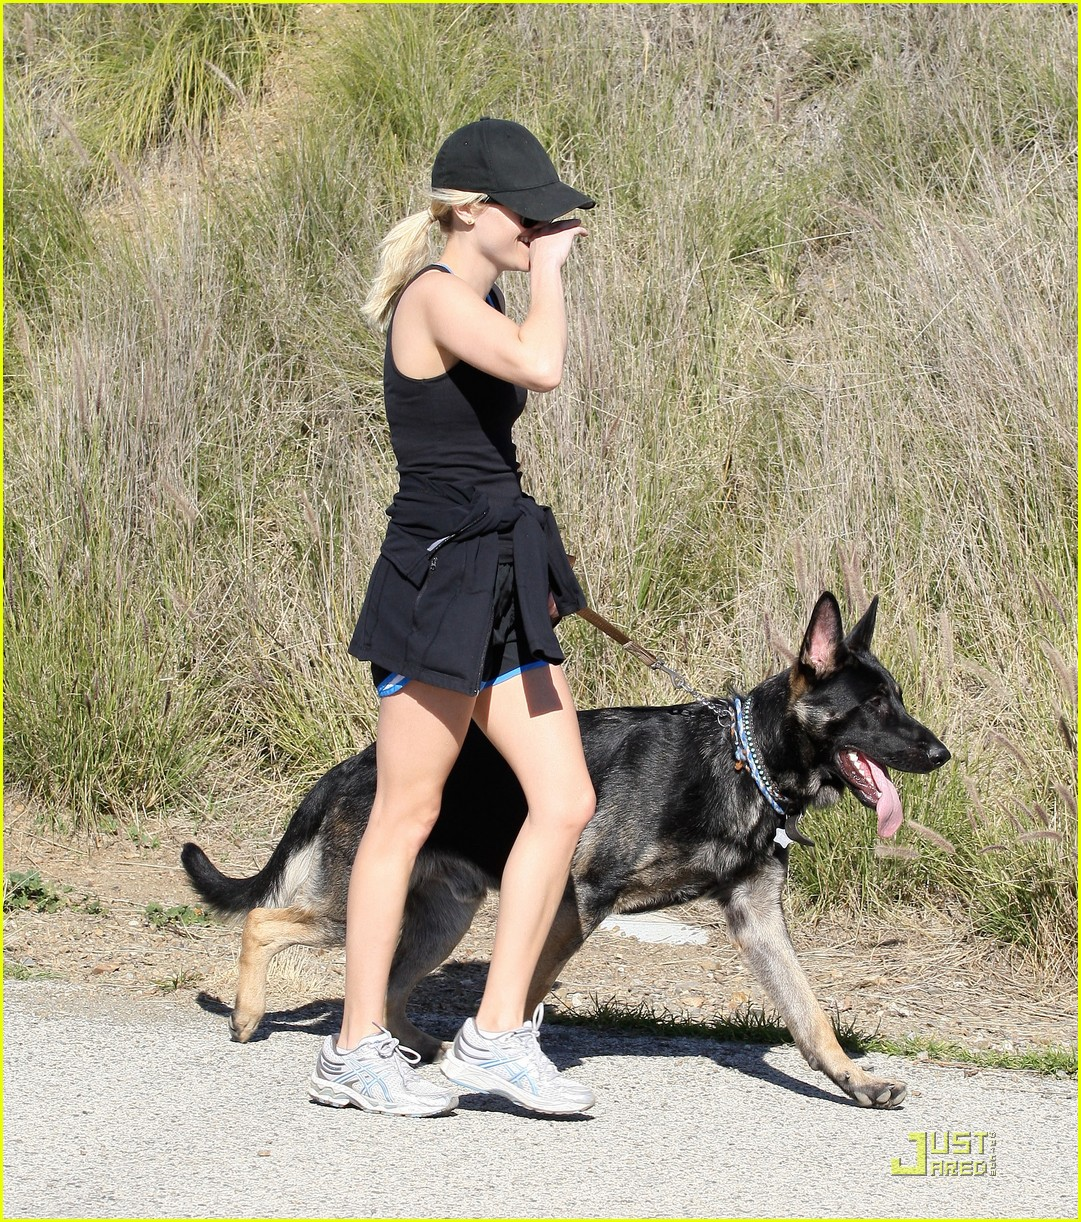 http://4.bp.blogspot.com/-kFTEz2s8Z-E/TZtYS-OTu6I/AAAAAAAAB9I/_q8CPDUttd0/s1600/reese-witherspoon-takes-hike-with-dogs-01.jpg